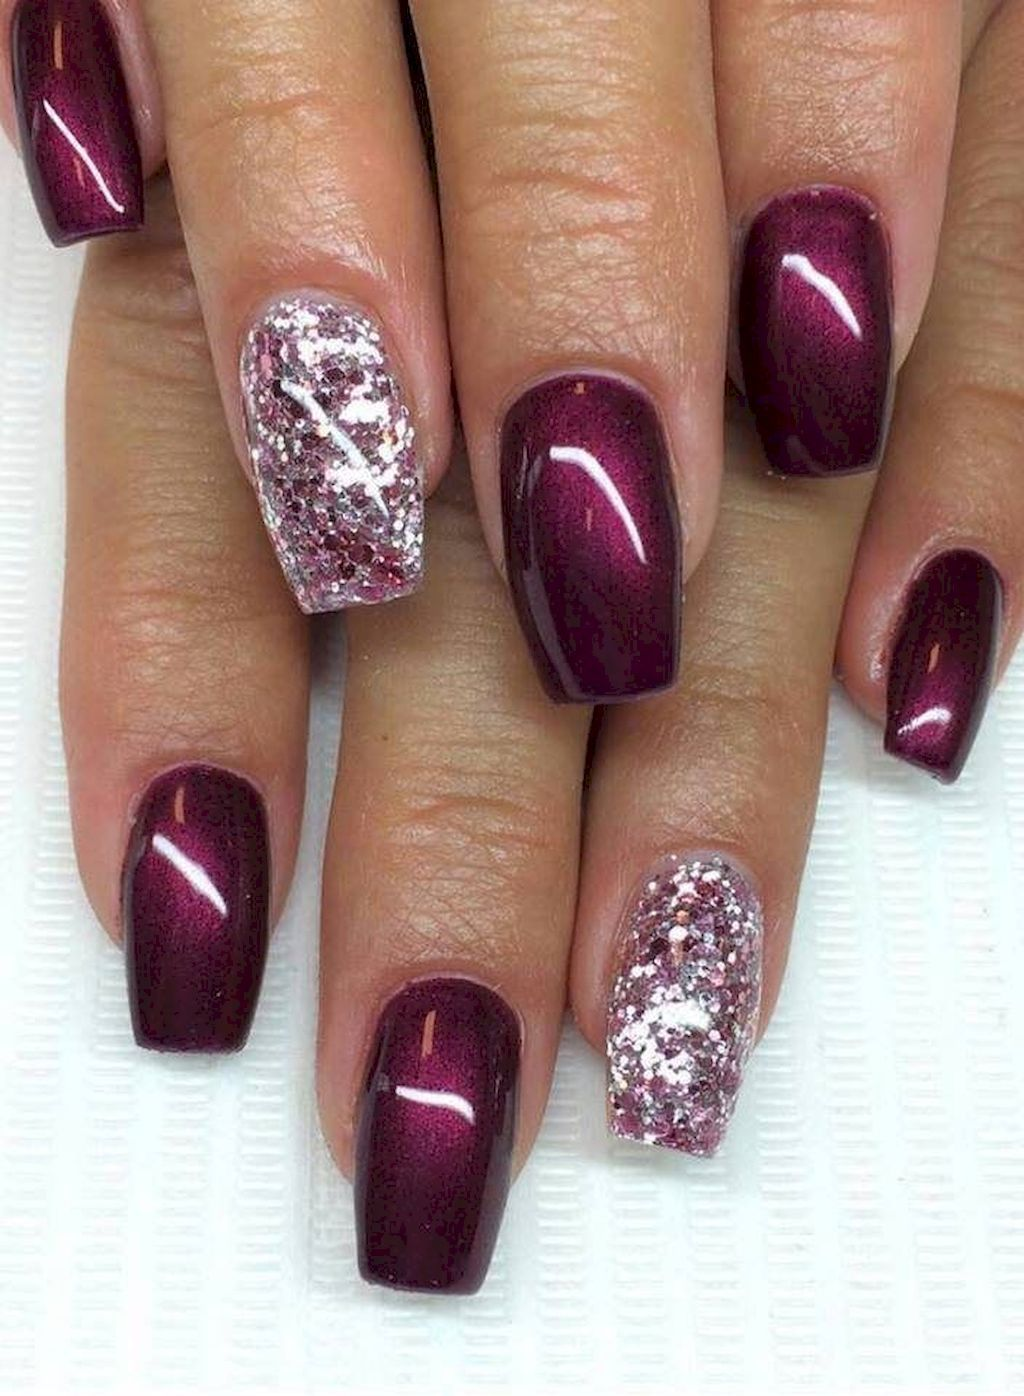 40 New Acrylic Nail Designs Ideas to Try This Year | Acrylic nail ...